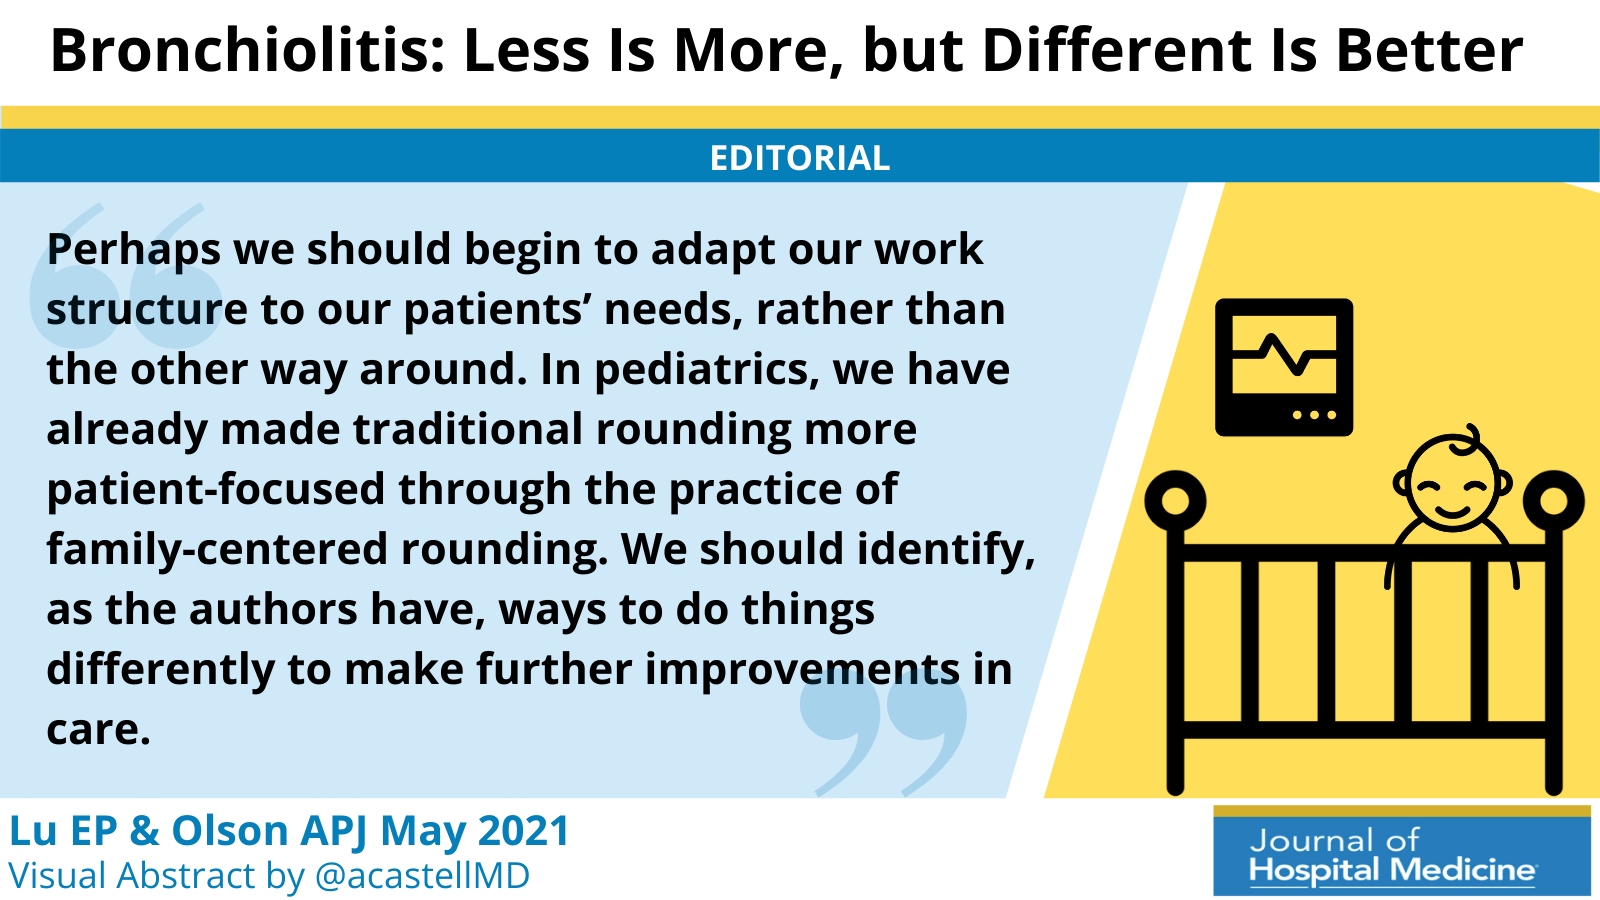 Bronchiolitis: Less Is More, but Different Is Better